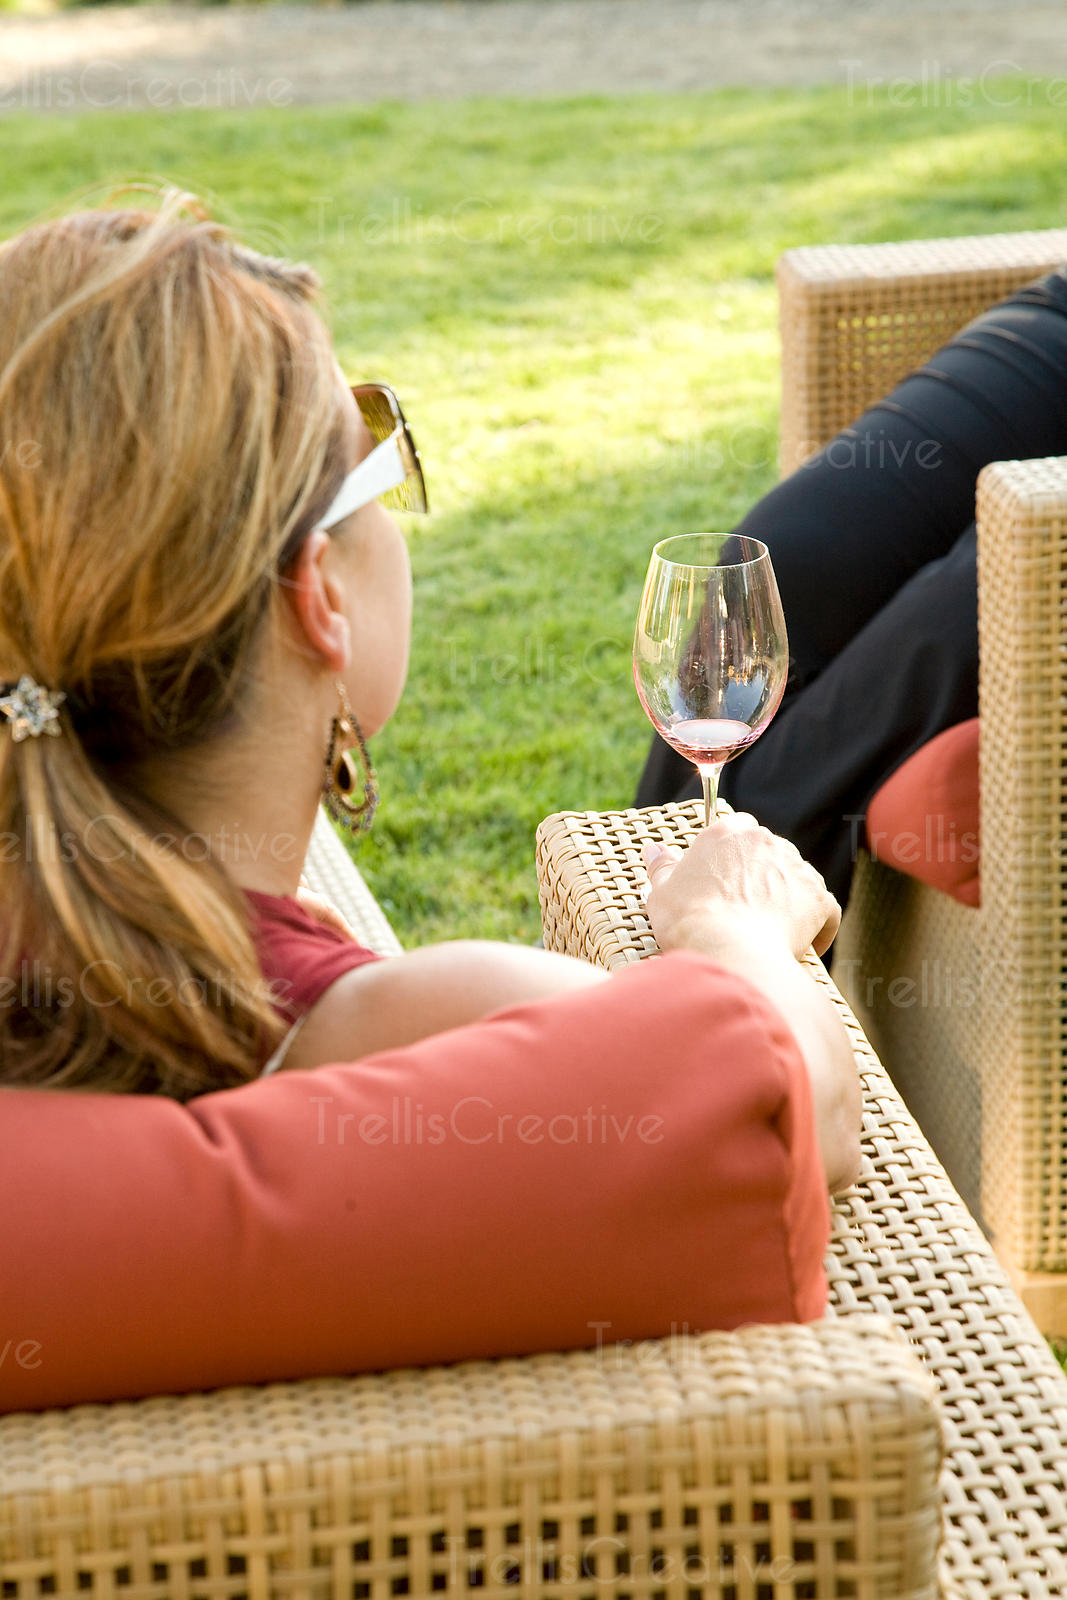 A young woman sits on an outdoor patio drinking a glass of wine